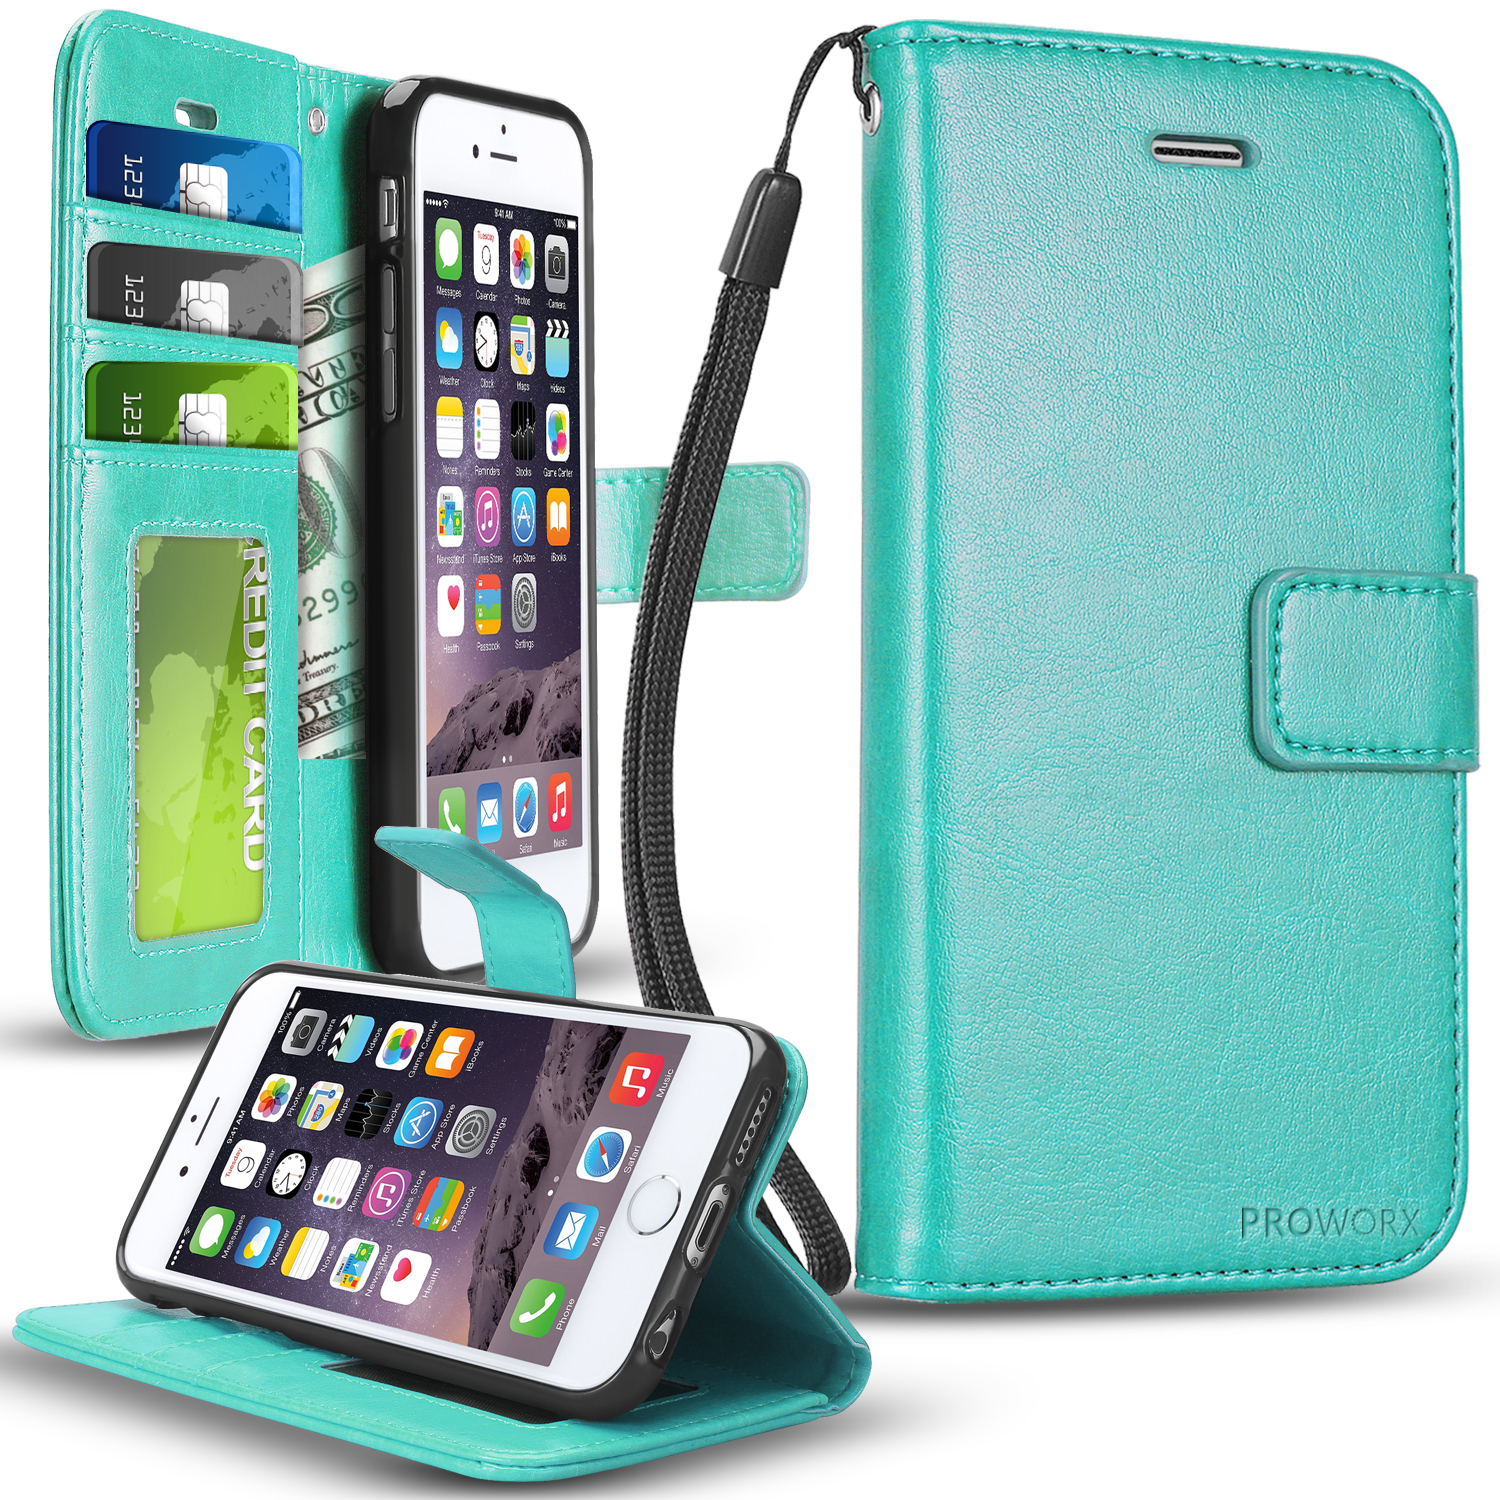 Apple iPhone 6 Plus 6S Plus (5.5) Mint Green ProWorx Wallet Case Luxury PU Leather Case Cover With Card Slots & Stand